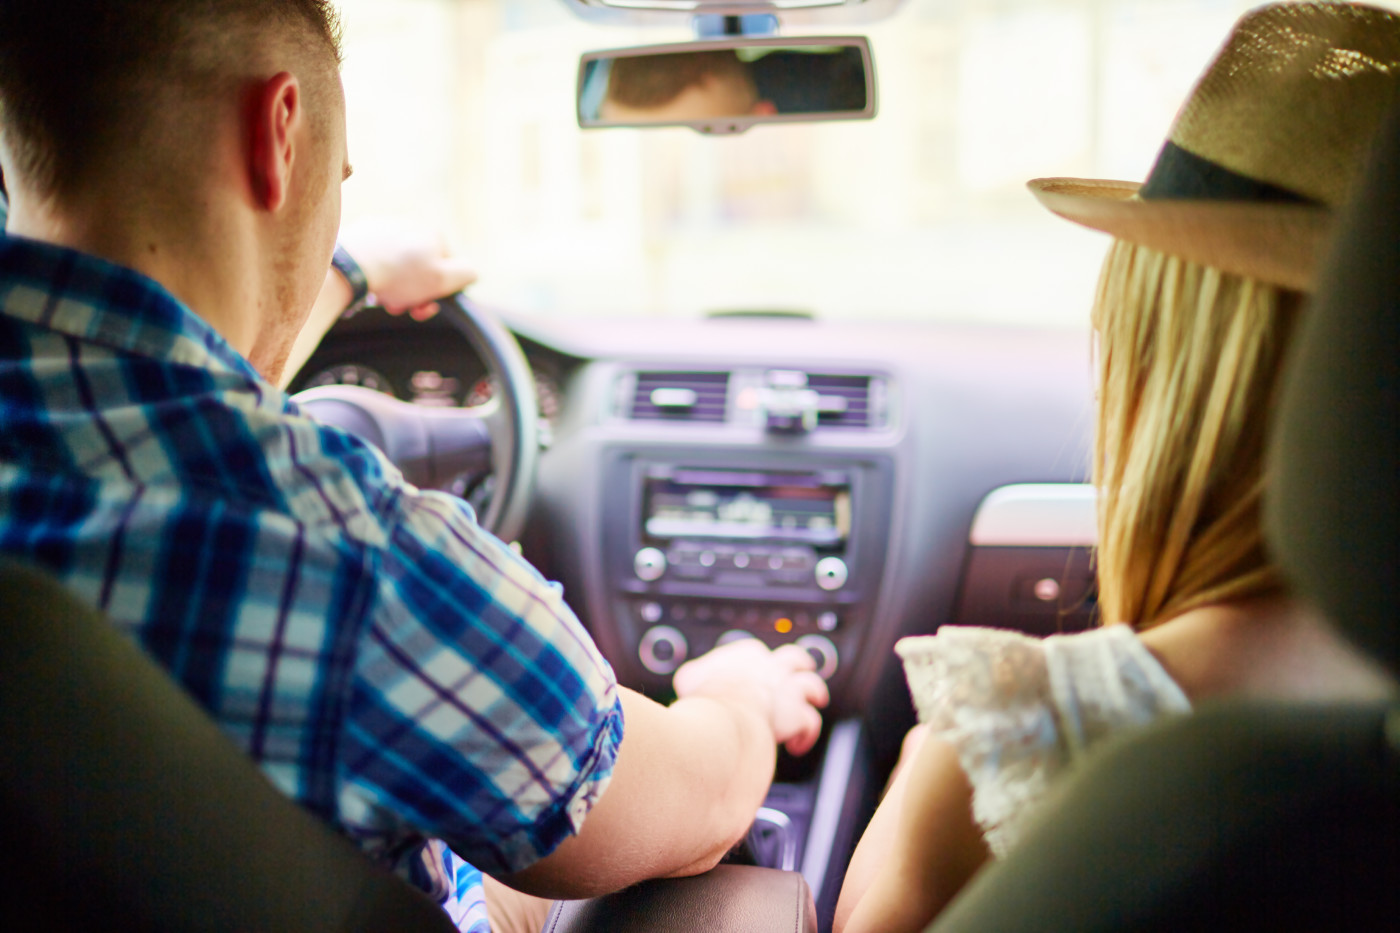 couple sitting together in a car